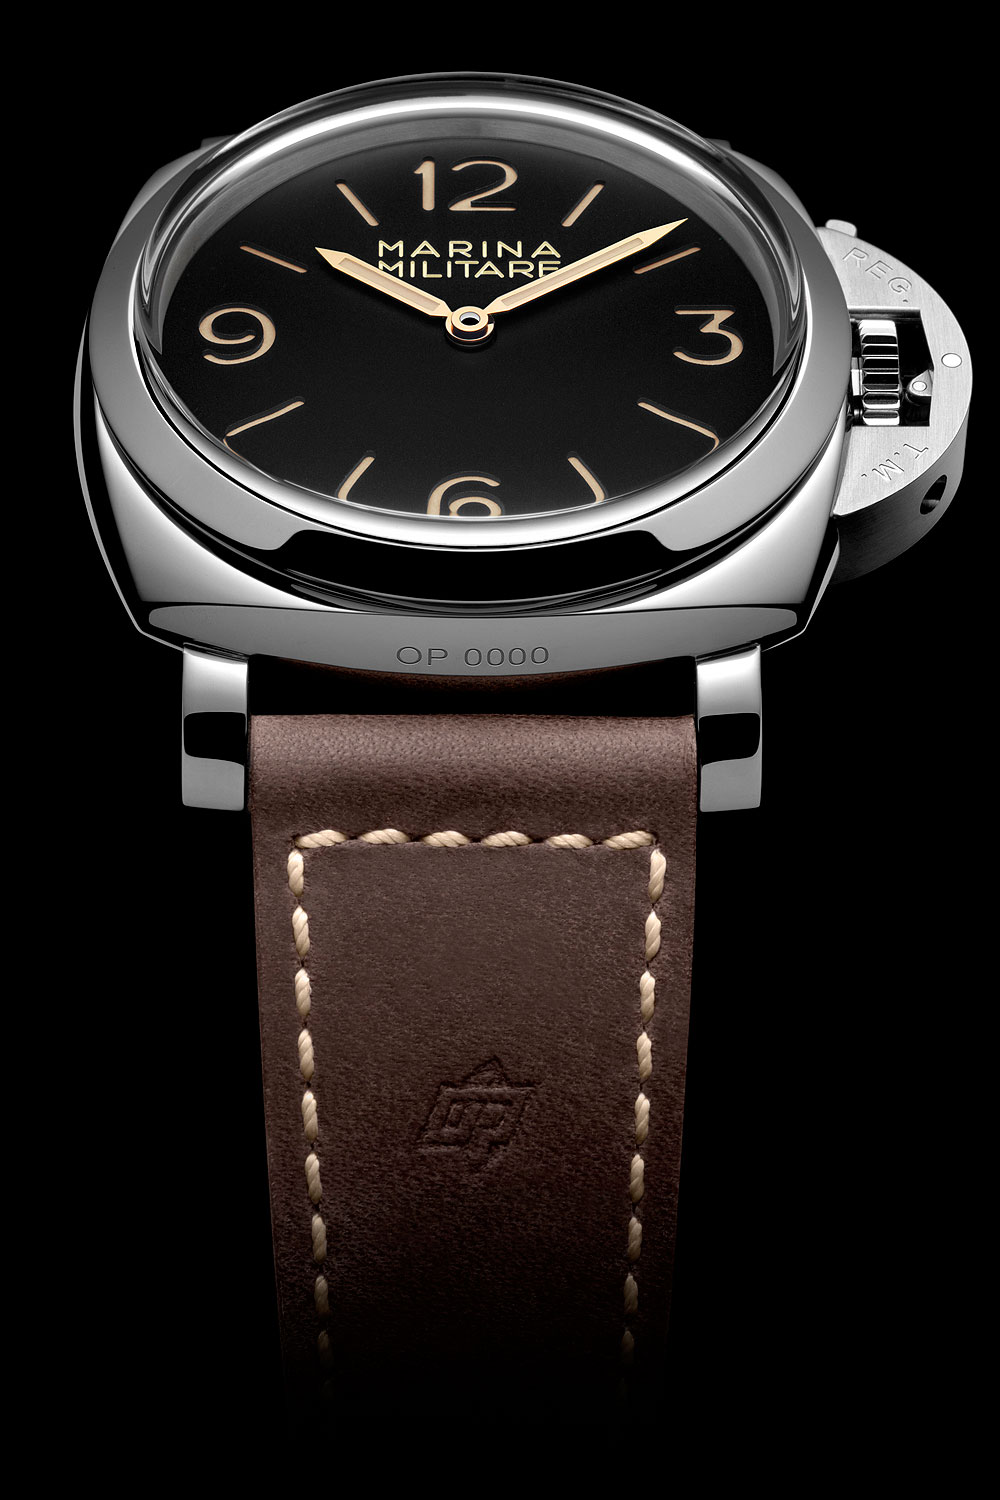 Panerai Luminor 1950 3 Days Acciaio - front